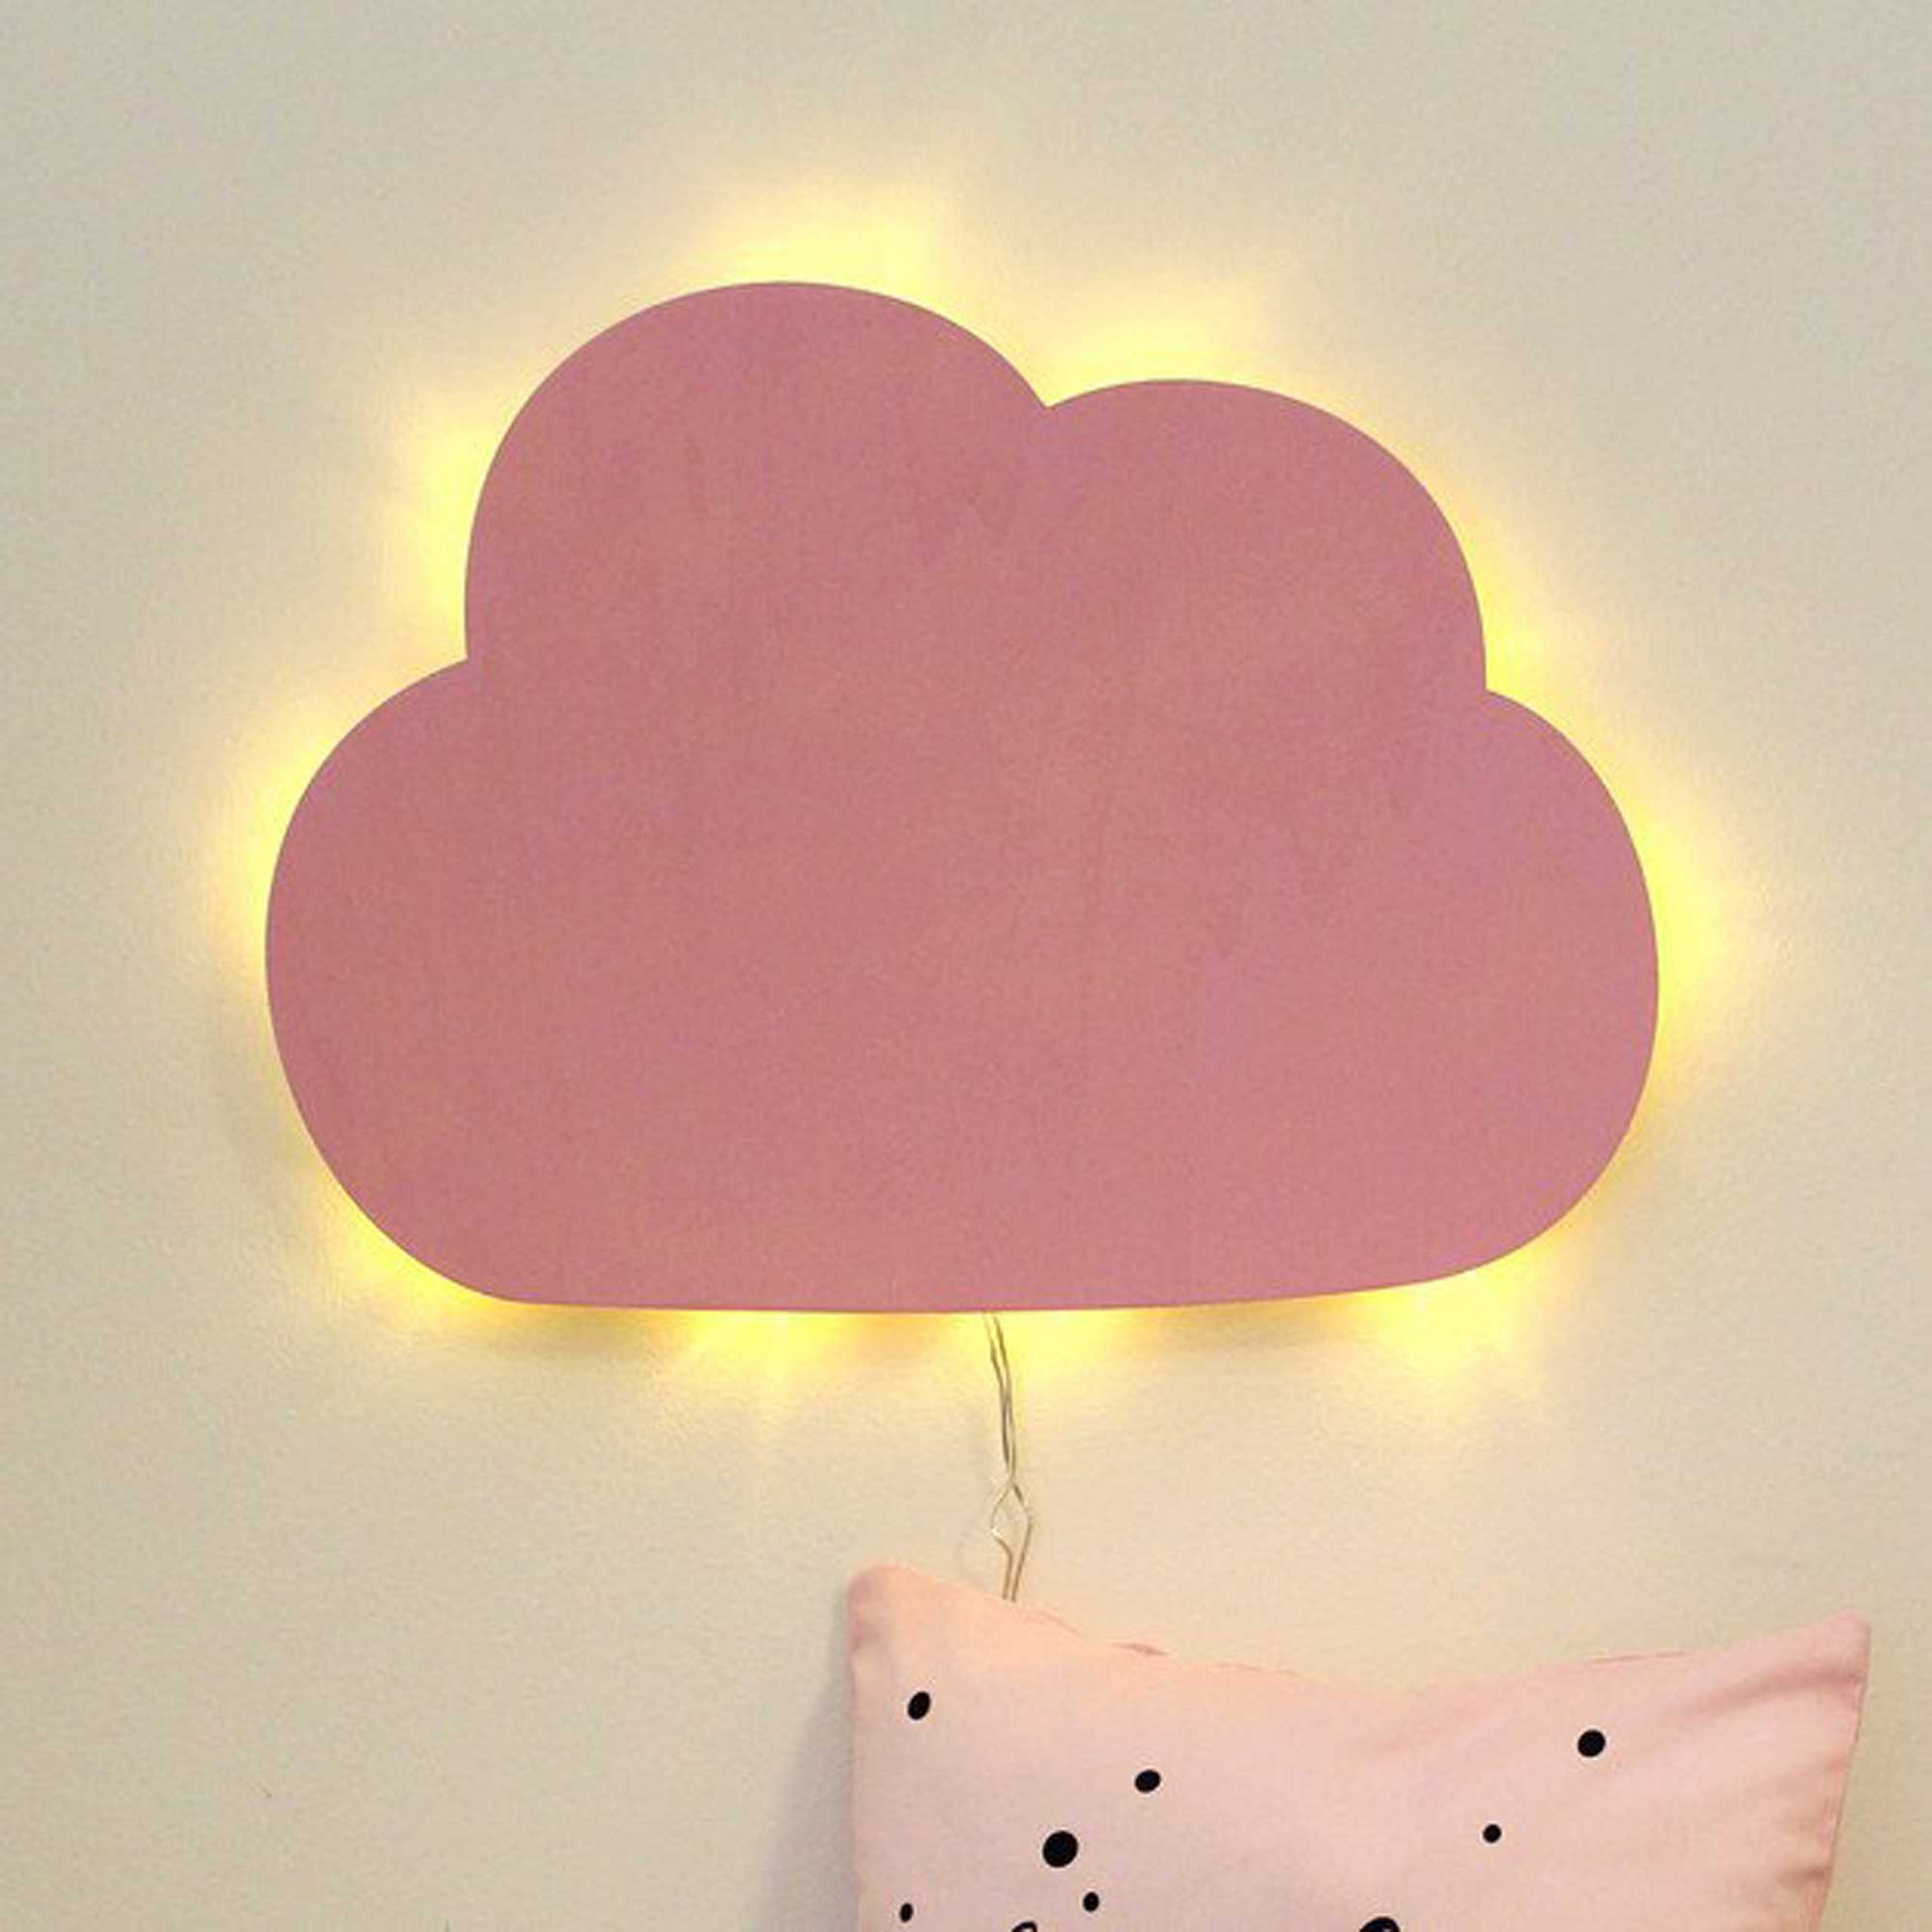 Wall Lamp Children Lamp Little Cloud Nightlight In Rose M2032 Wall Decals Bumper Sticker Murals Bags Cups Backpacks And Many More At Www Deinewandkunst Com